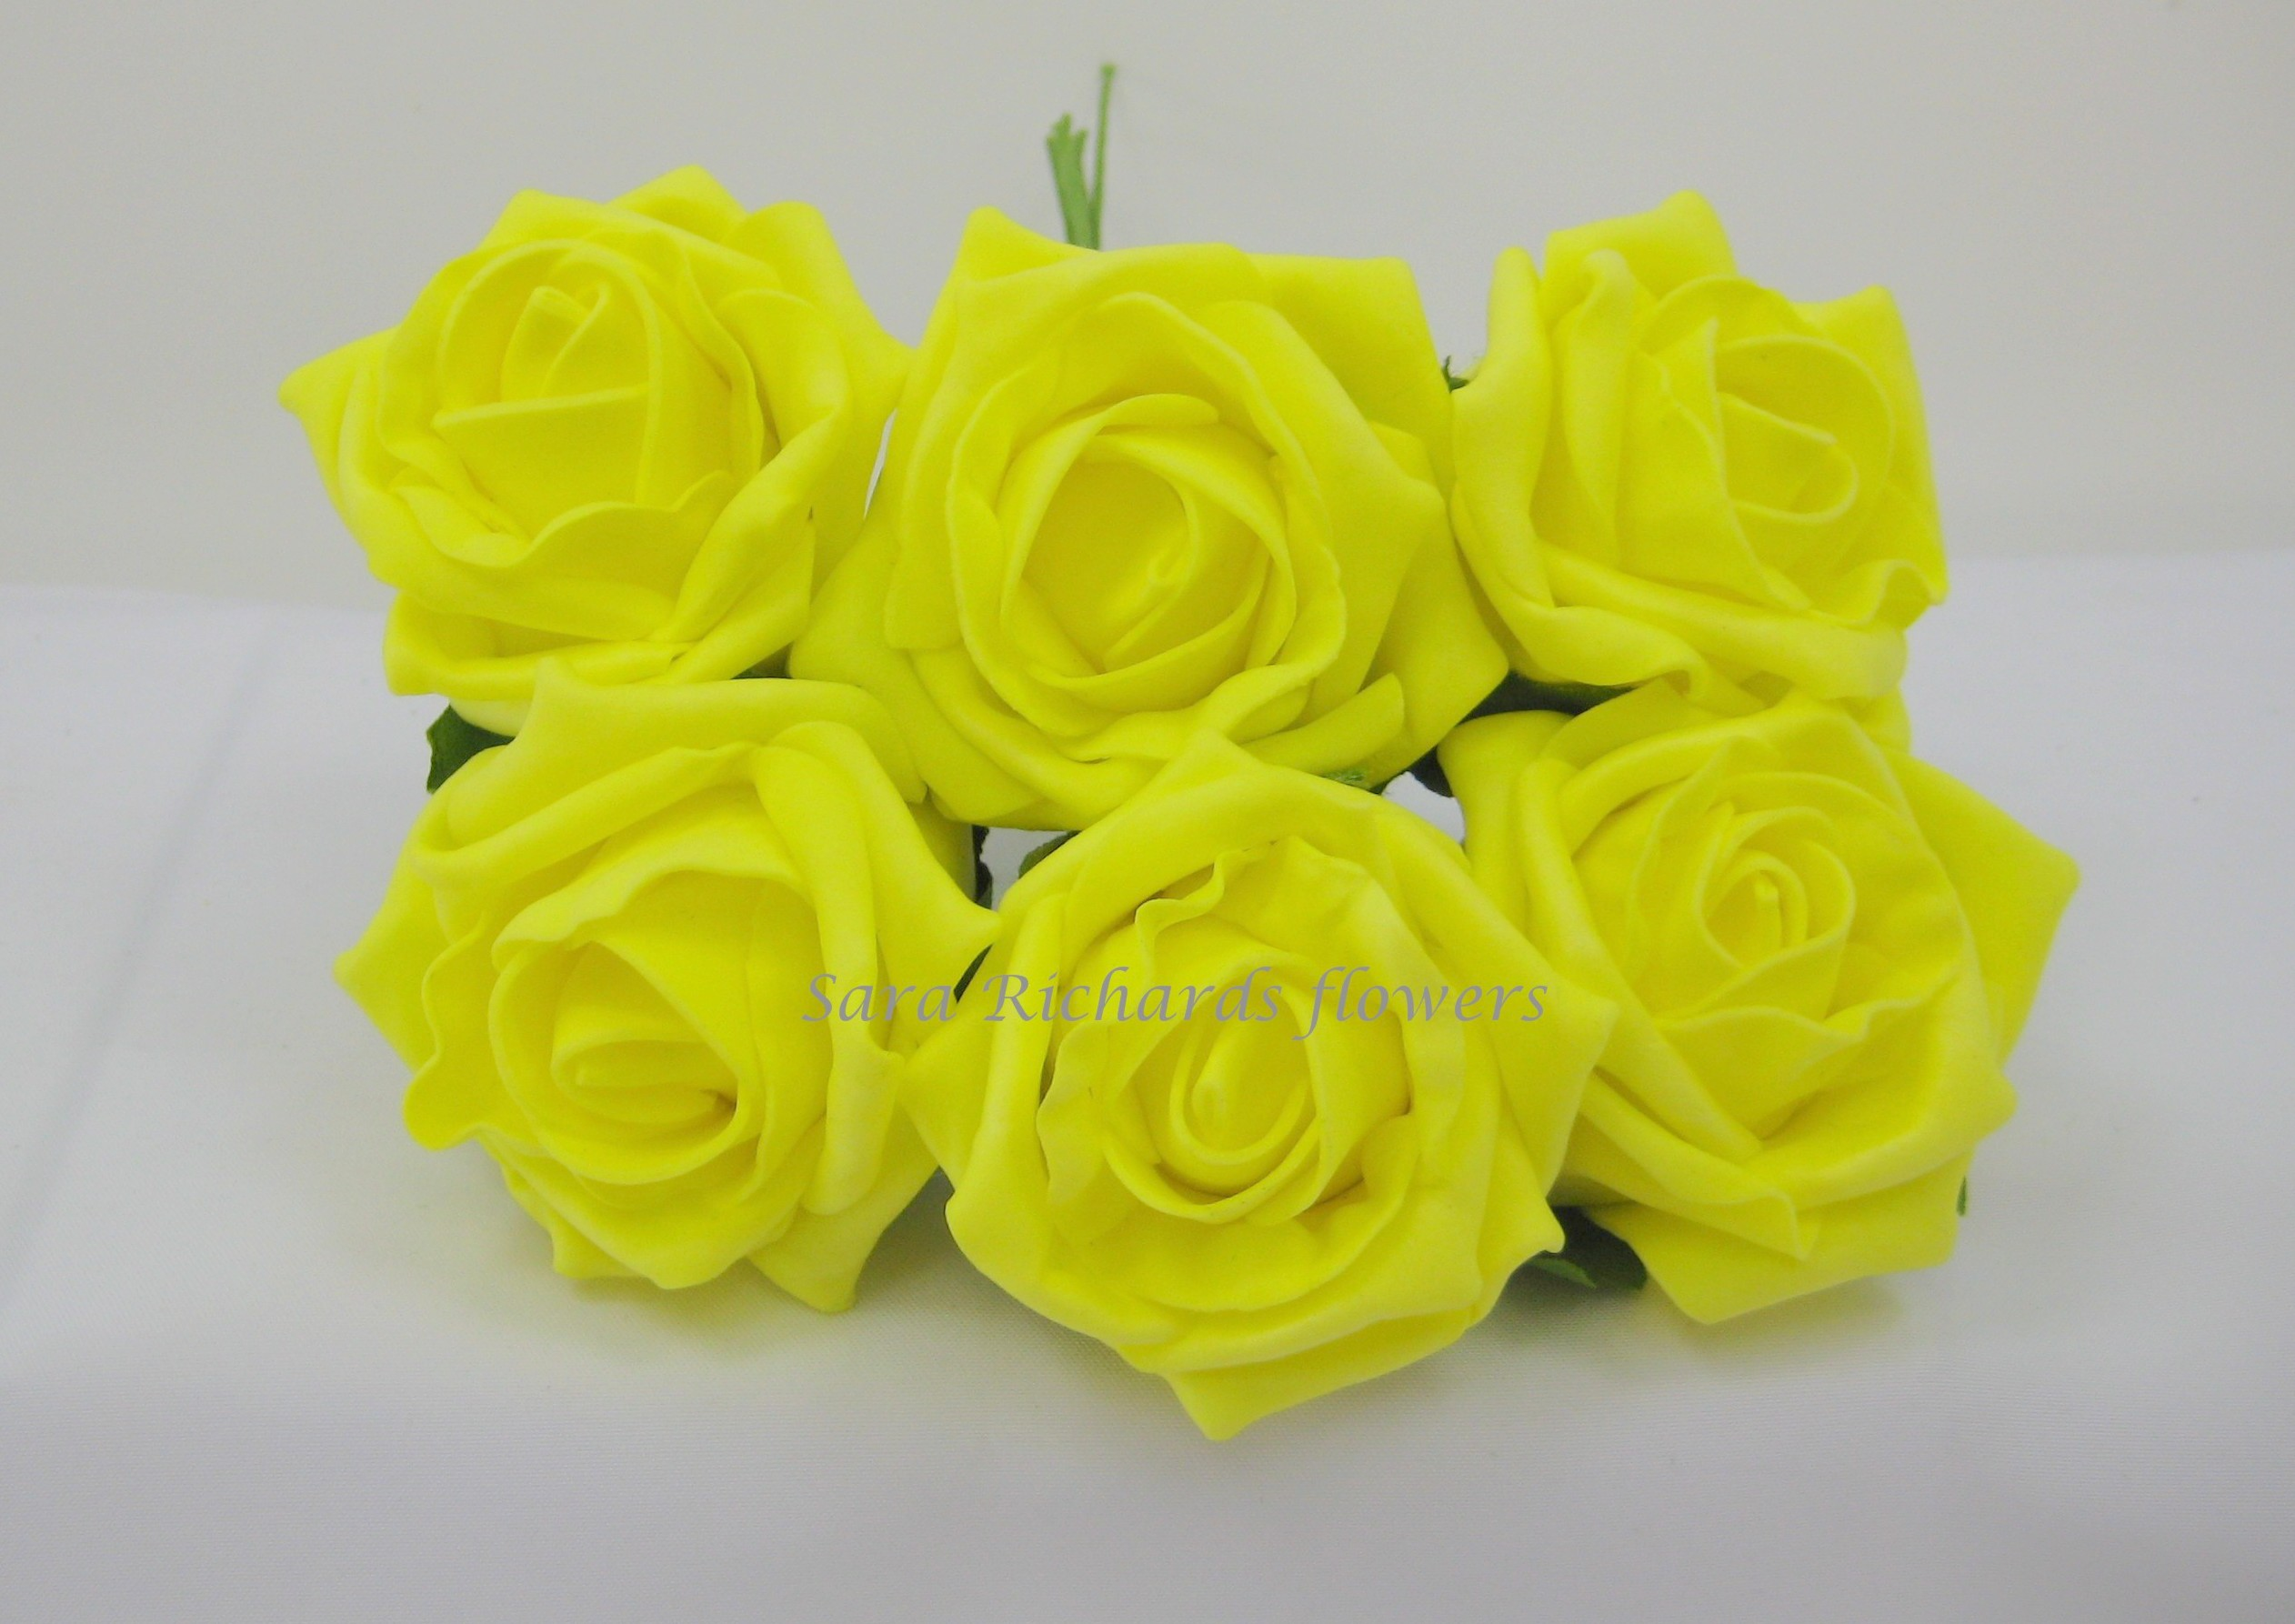 Quality 6 Cm Cottage Rose In Light Yellow Sara Richards Flowers